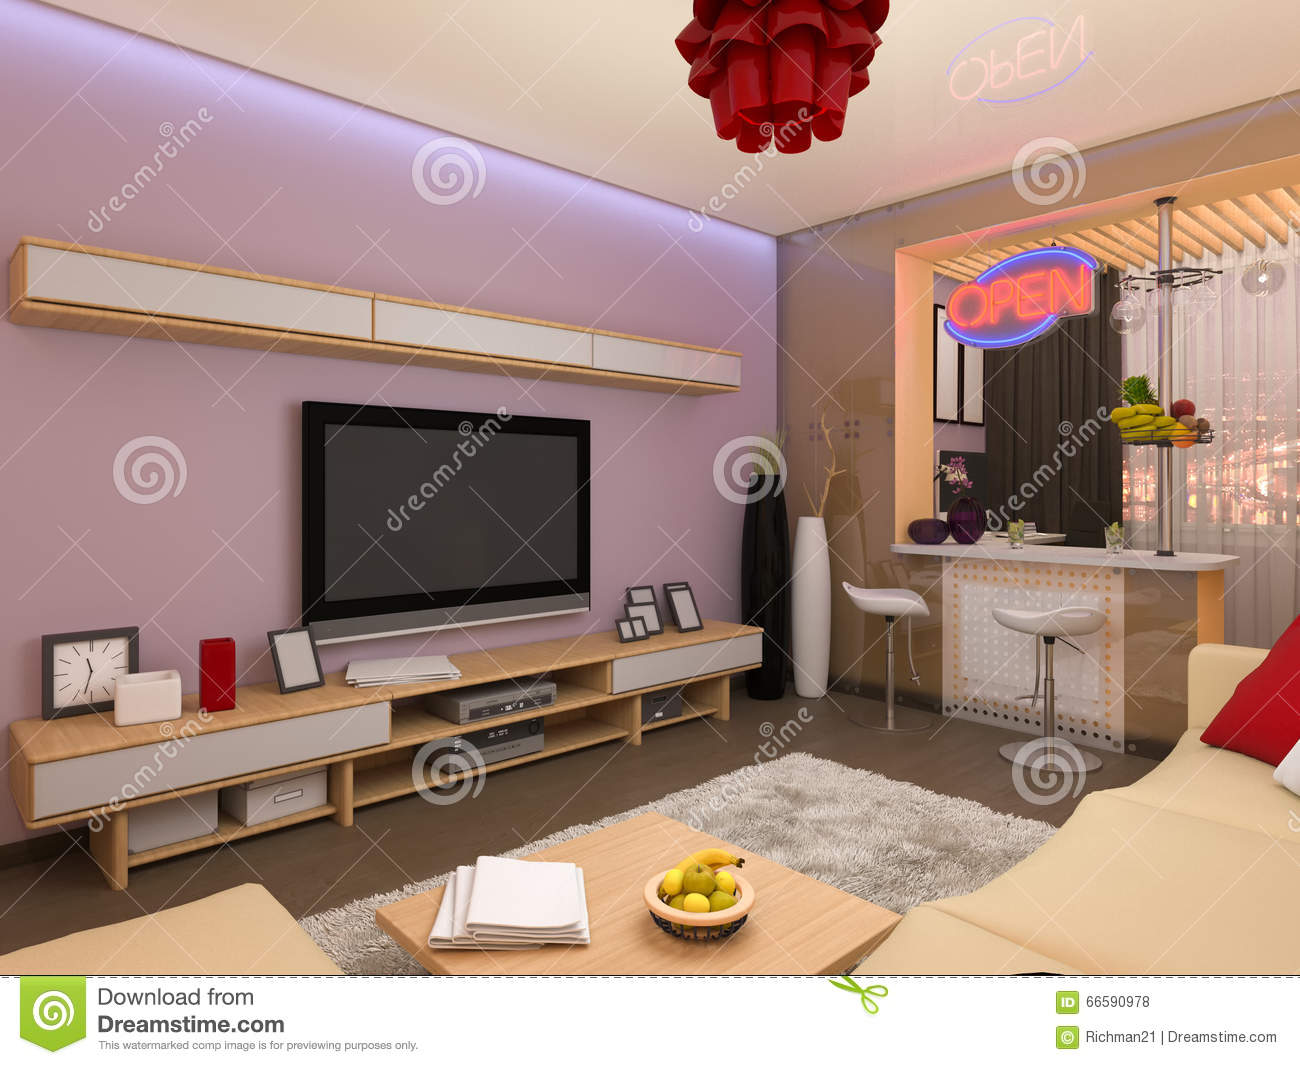 3d render of the interior design of the living room in a modern s stock illustration image - Room design photos ...